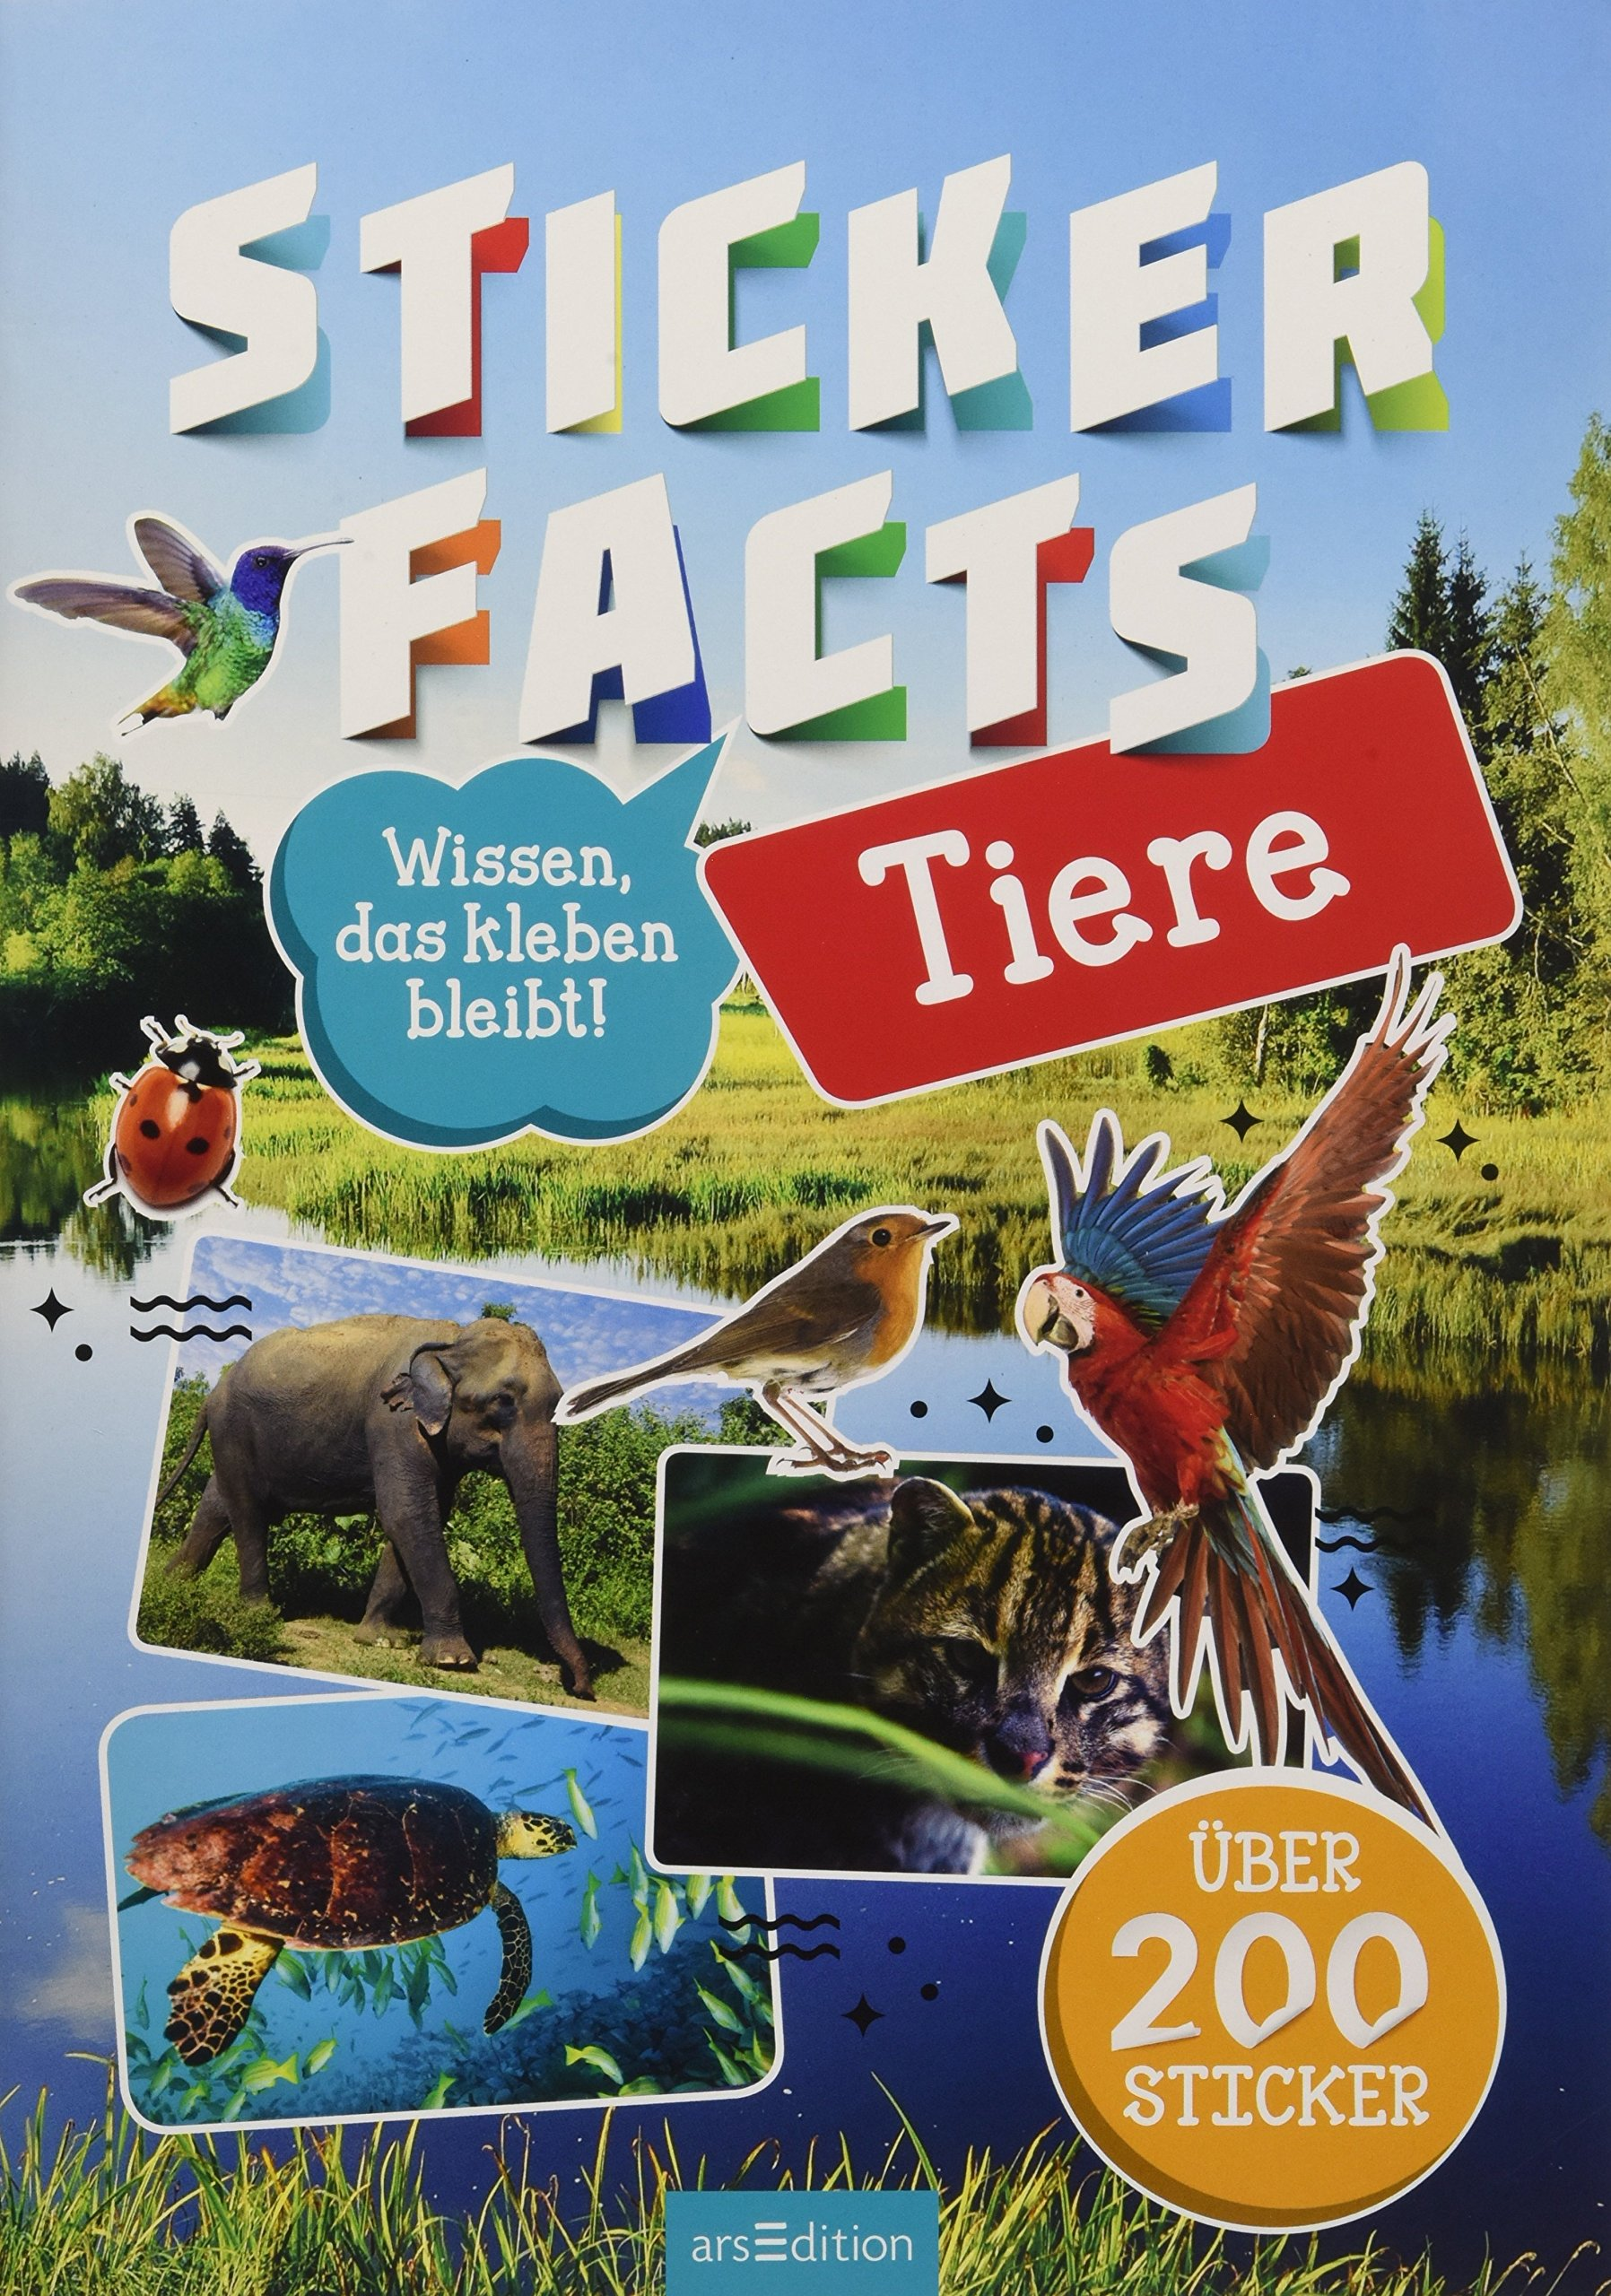 Stickerfacts Tiere: Mit über 200 Stickern Taschenbuch – 23. April 2018 Miriam Scholz arsEdition 3845823682 JUVENILE FICTION / General